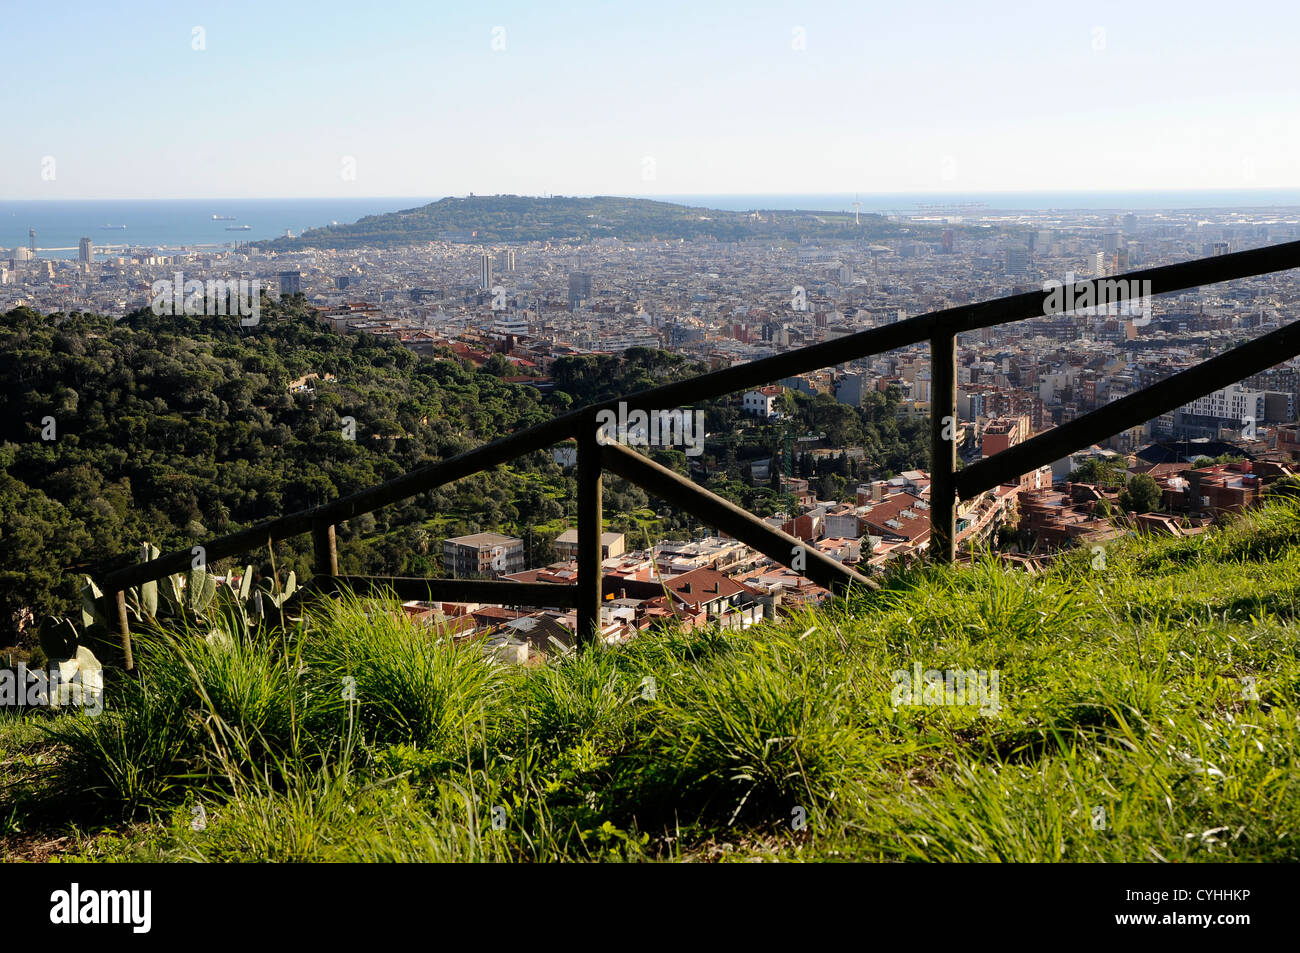 """general view of Barcelona and the mountain of Montjuic from the top of the """"parc  de la creueta del coll """". Stock Photo"""